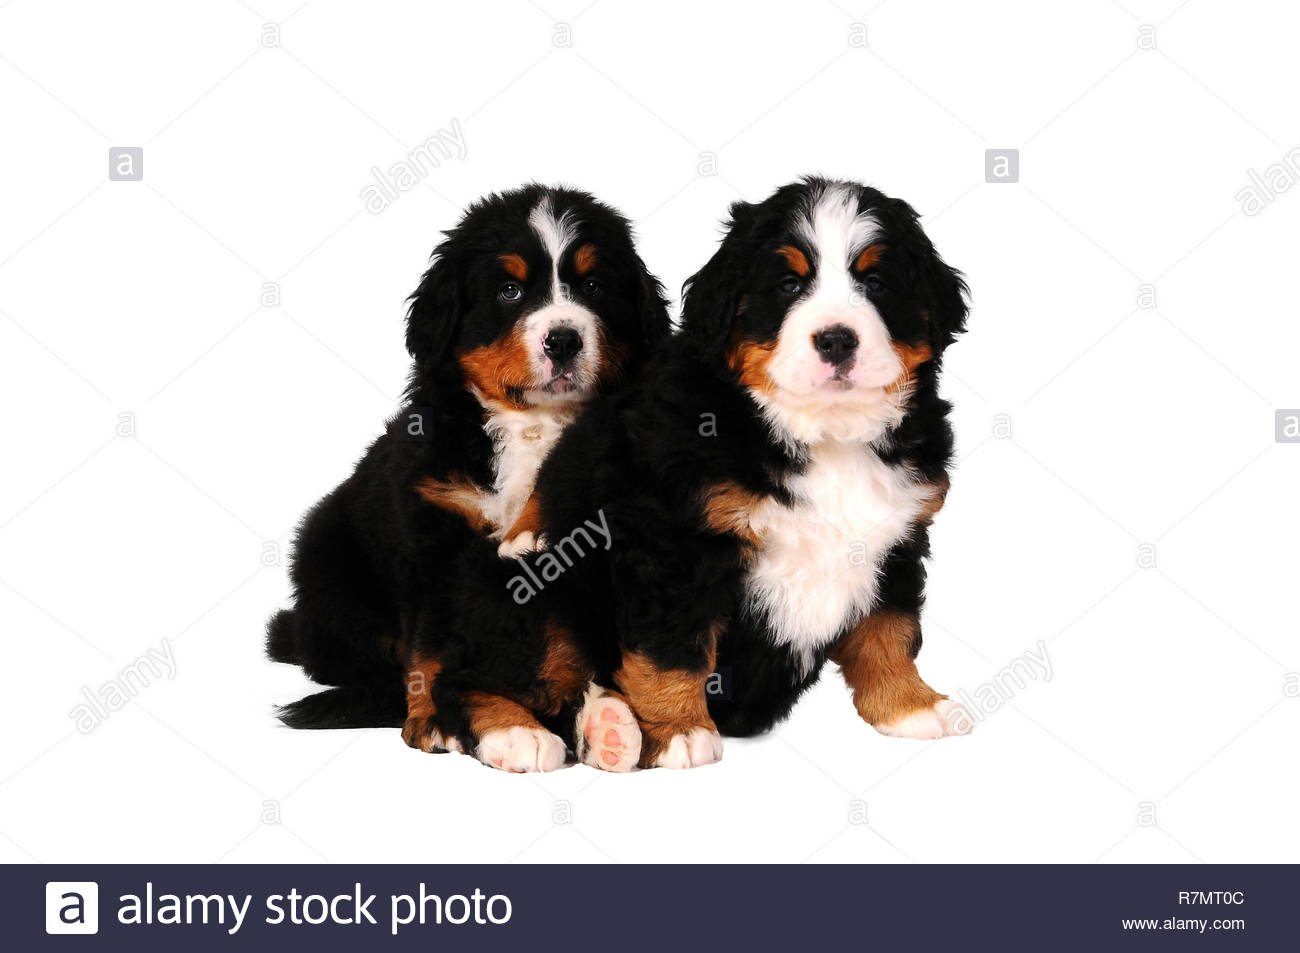 puppy bouvier bernese mountain dog isolated on white background R7MT0C